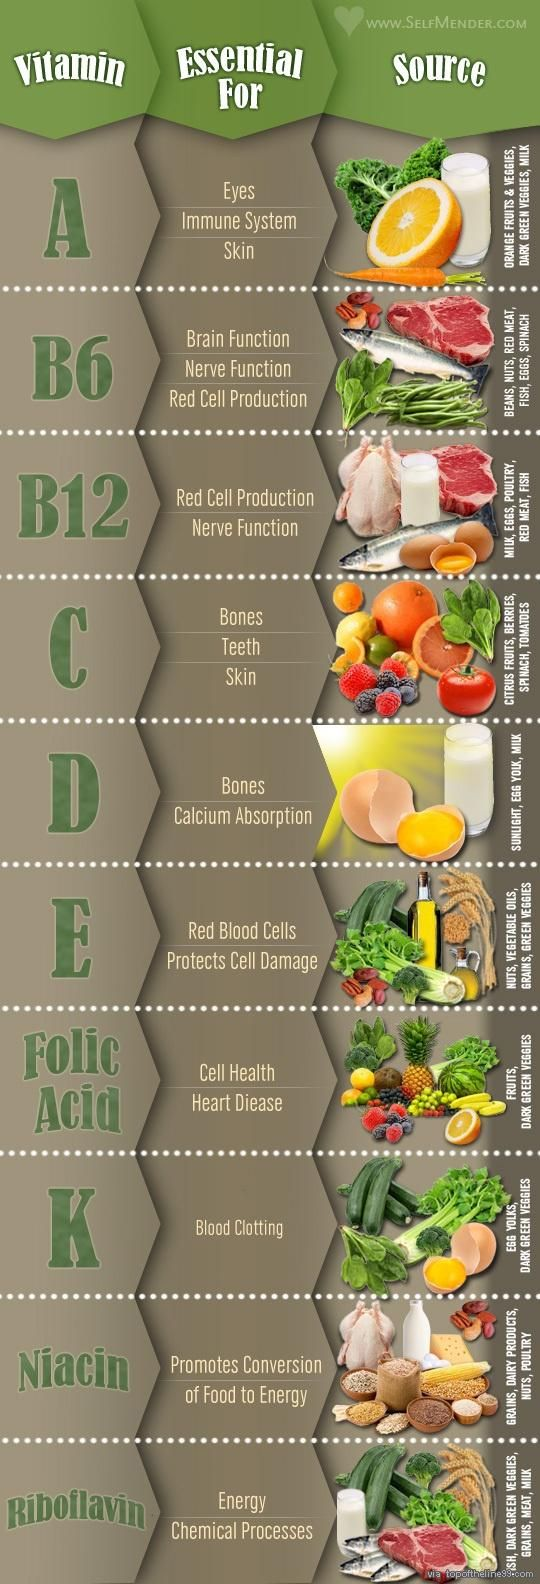 Vitamins and how to get them! It is particularly important to get enough folate and vitamin D during pre-conception.